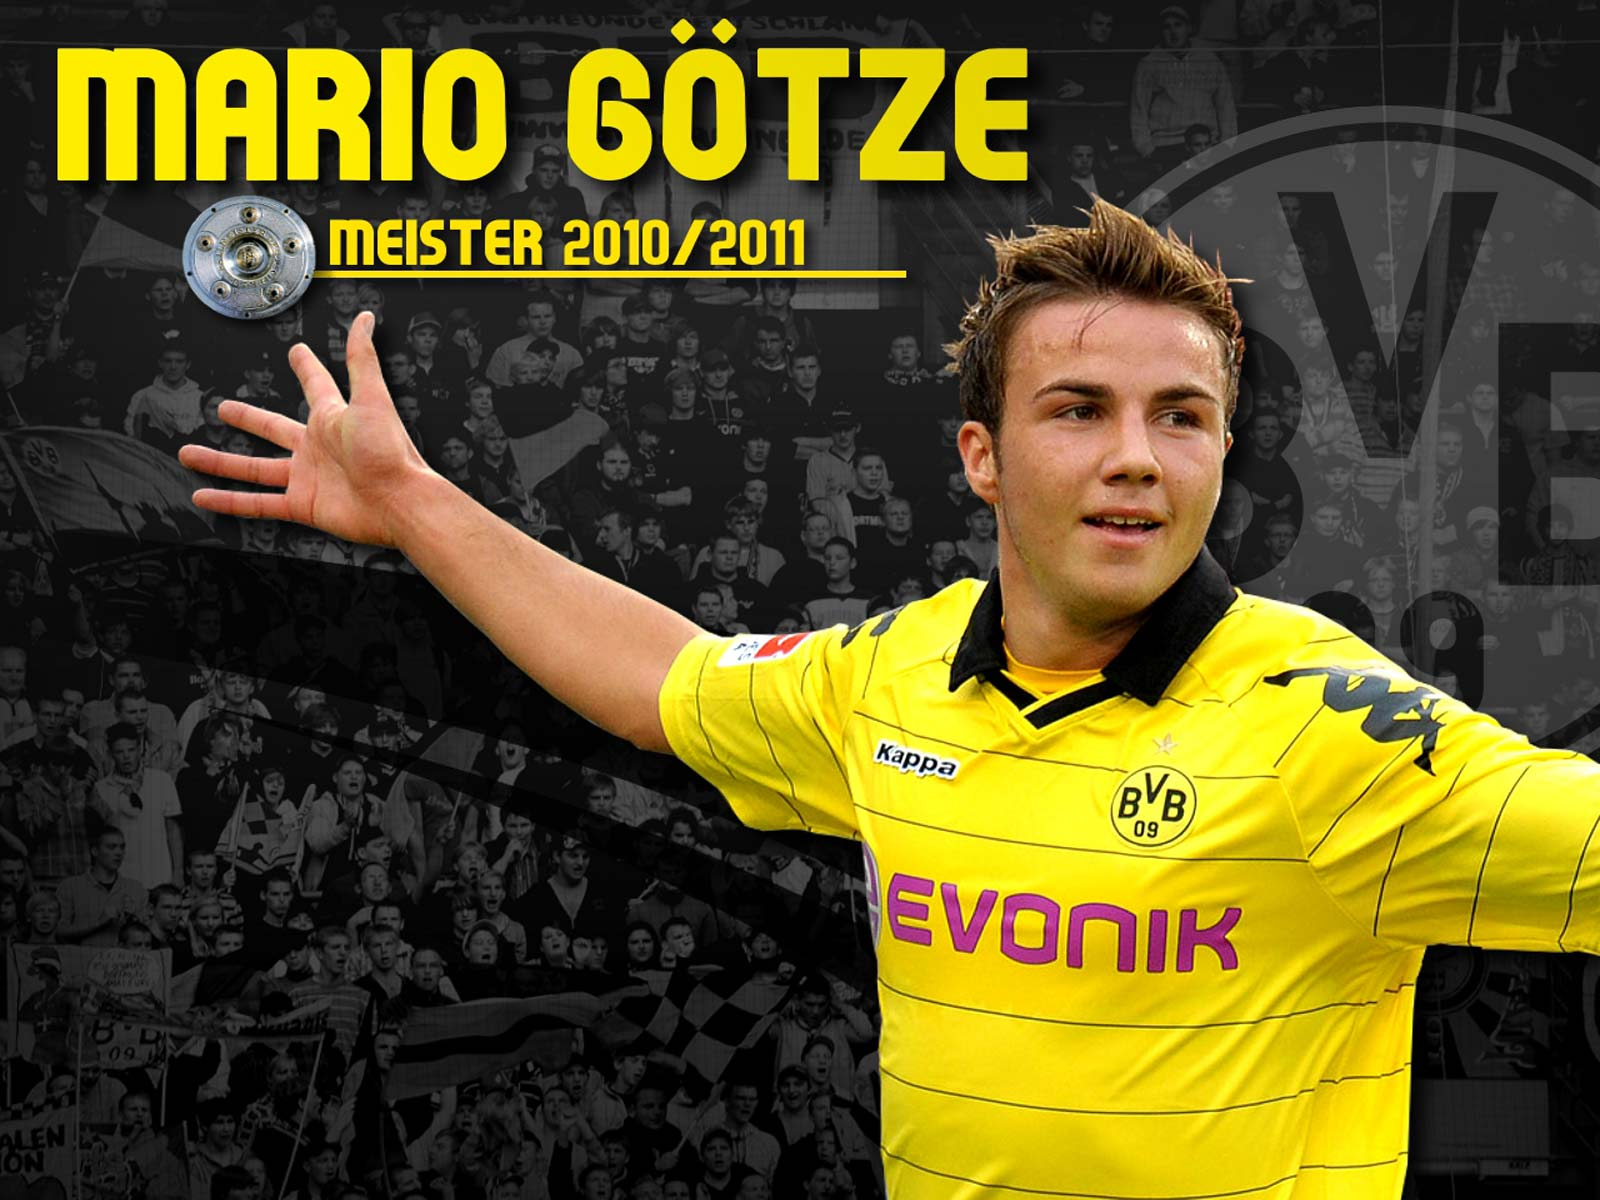 Mario gotze new hd wallpapers 2013 2014